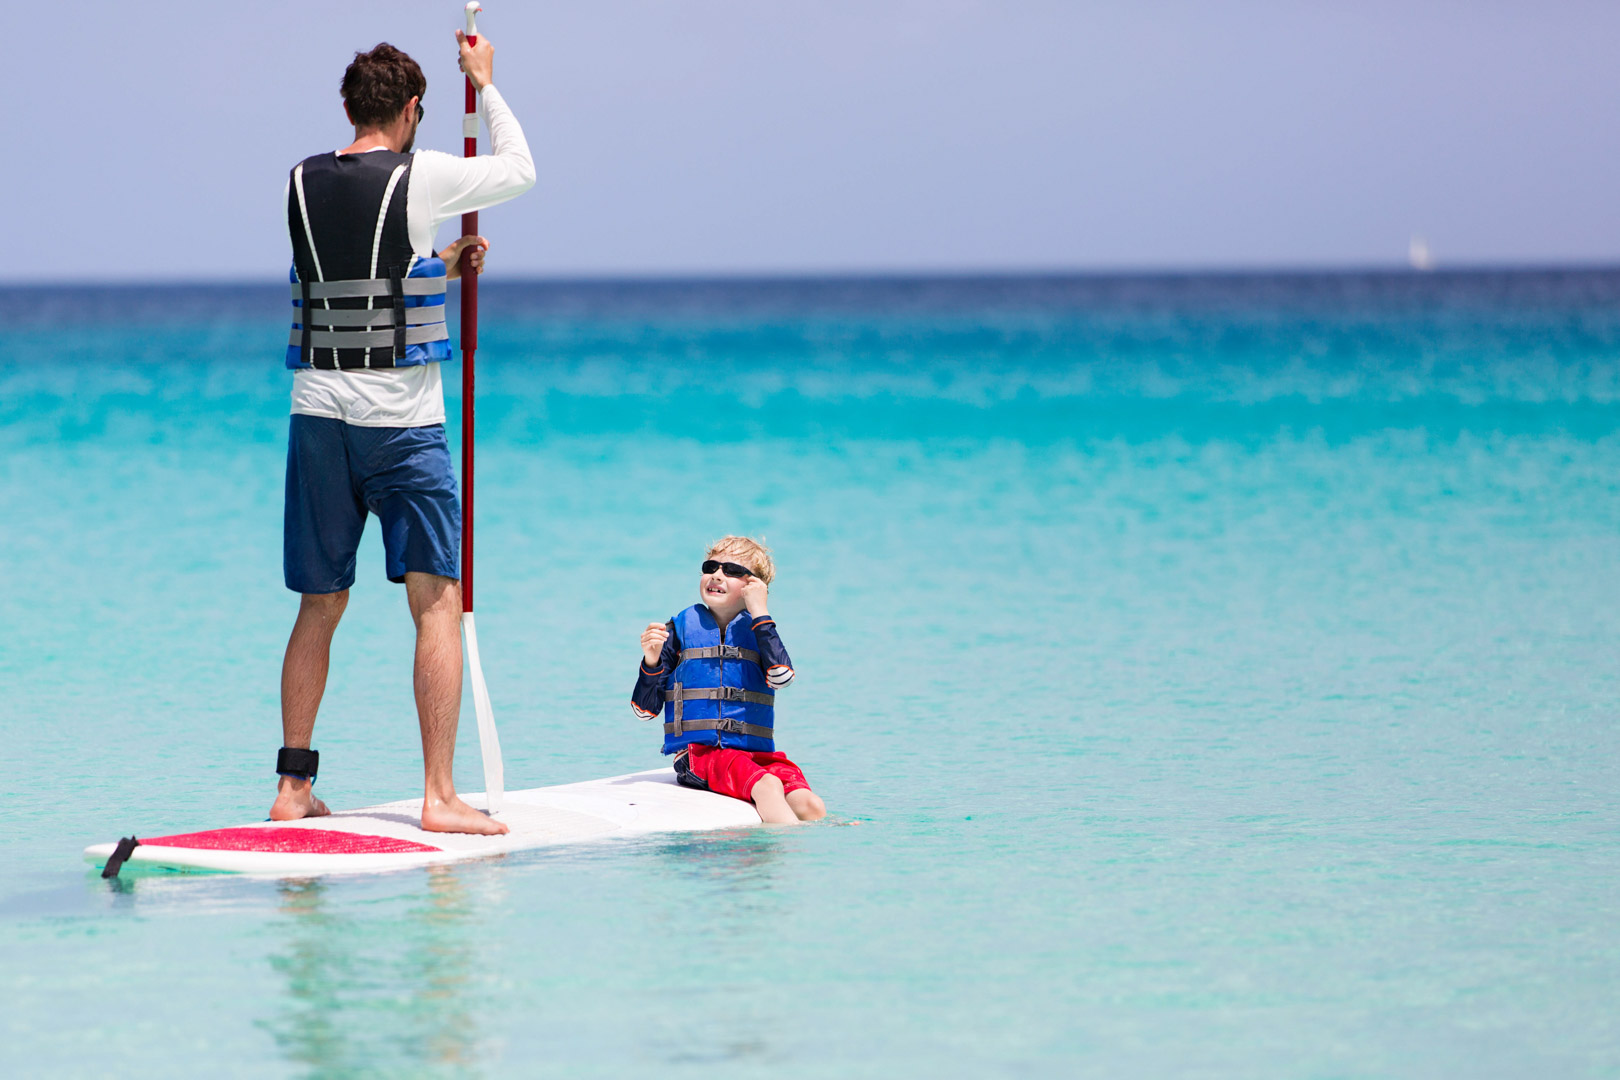 man paddle boarding with a little kid in the ocean